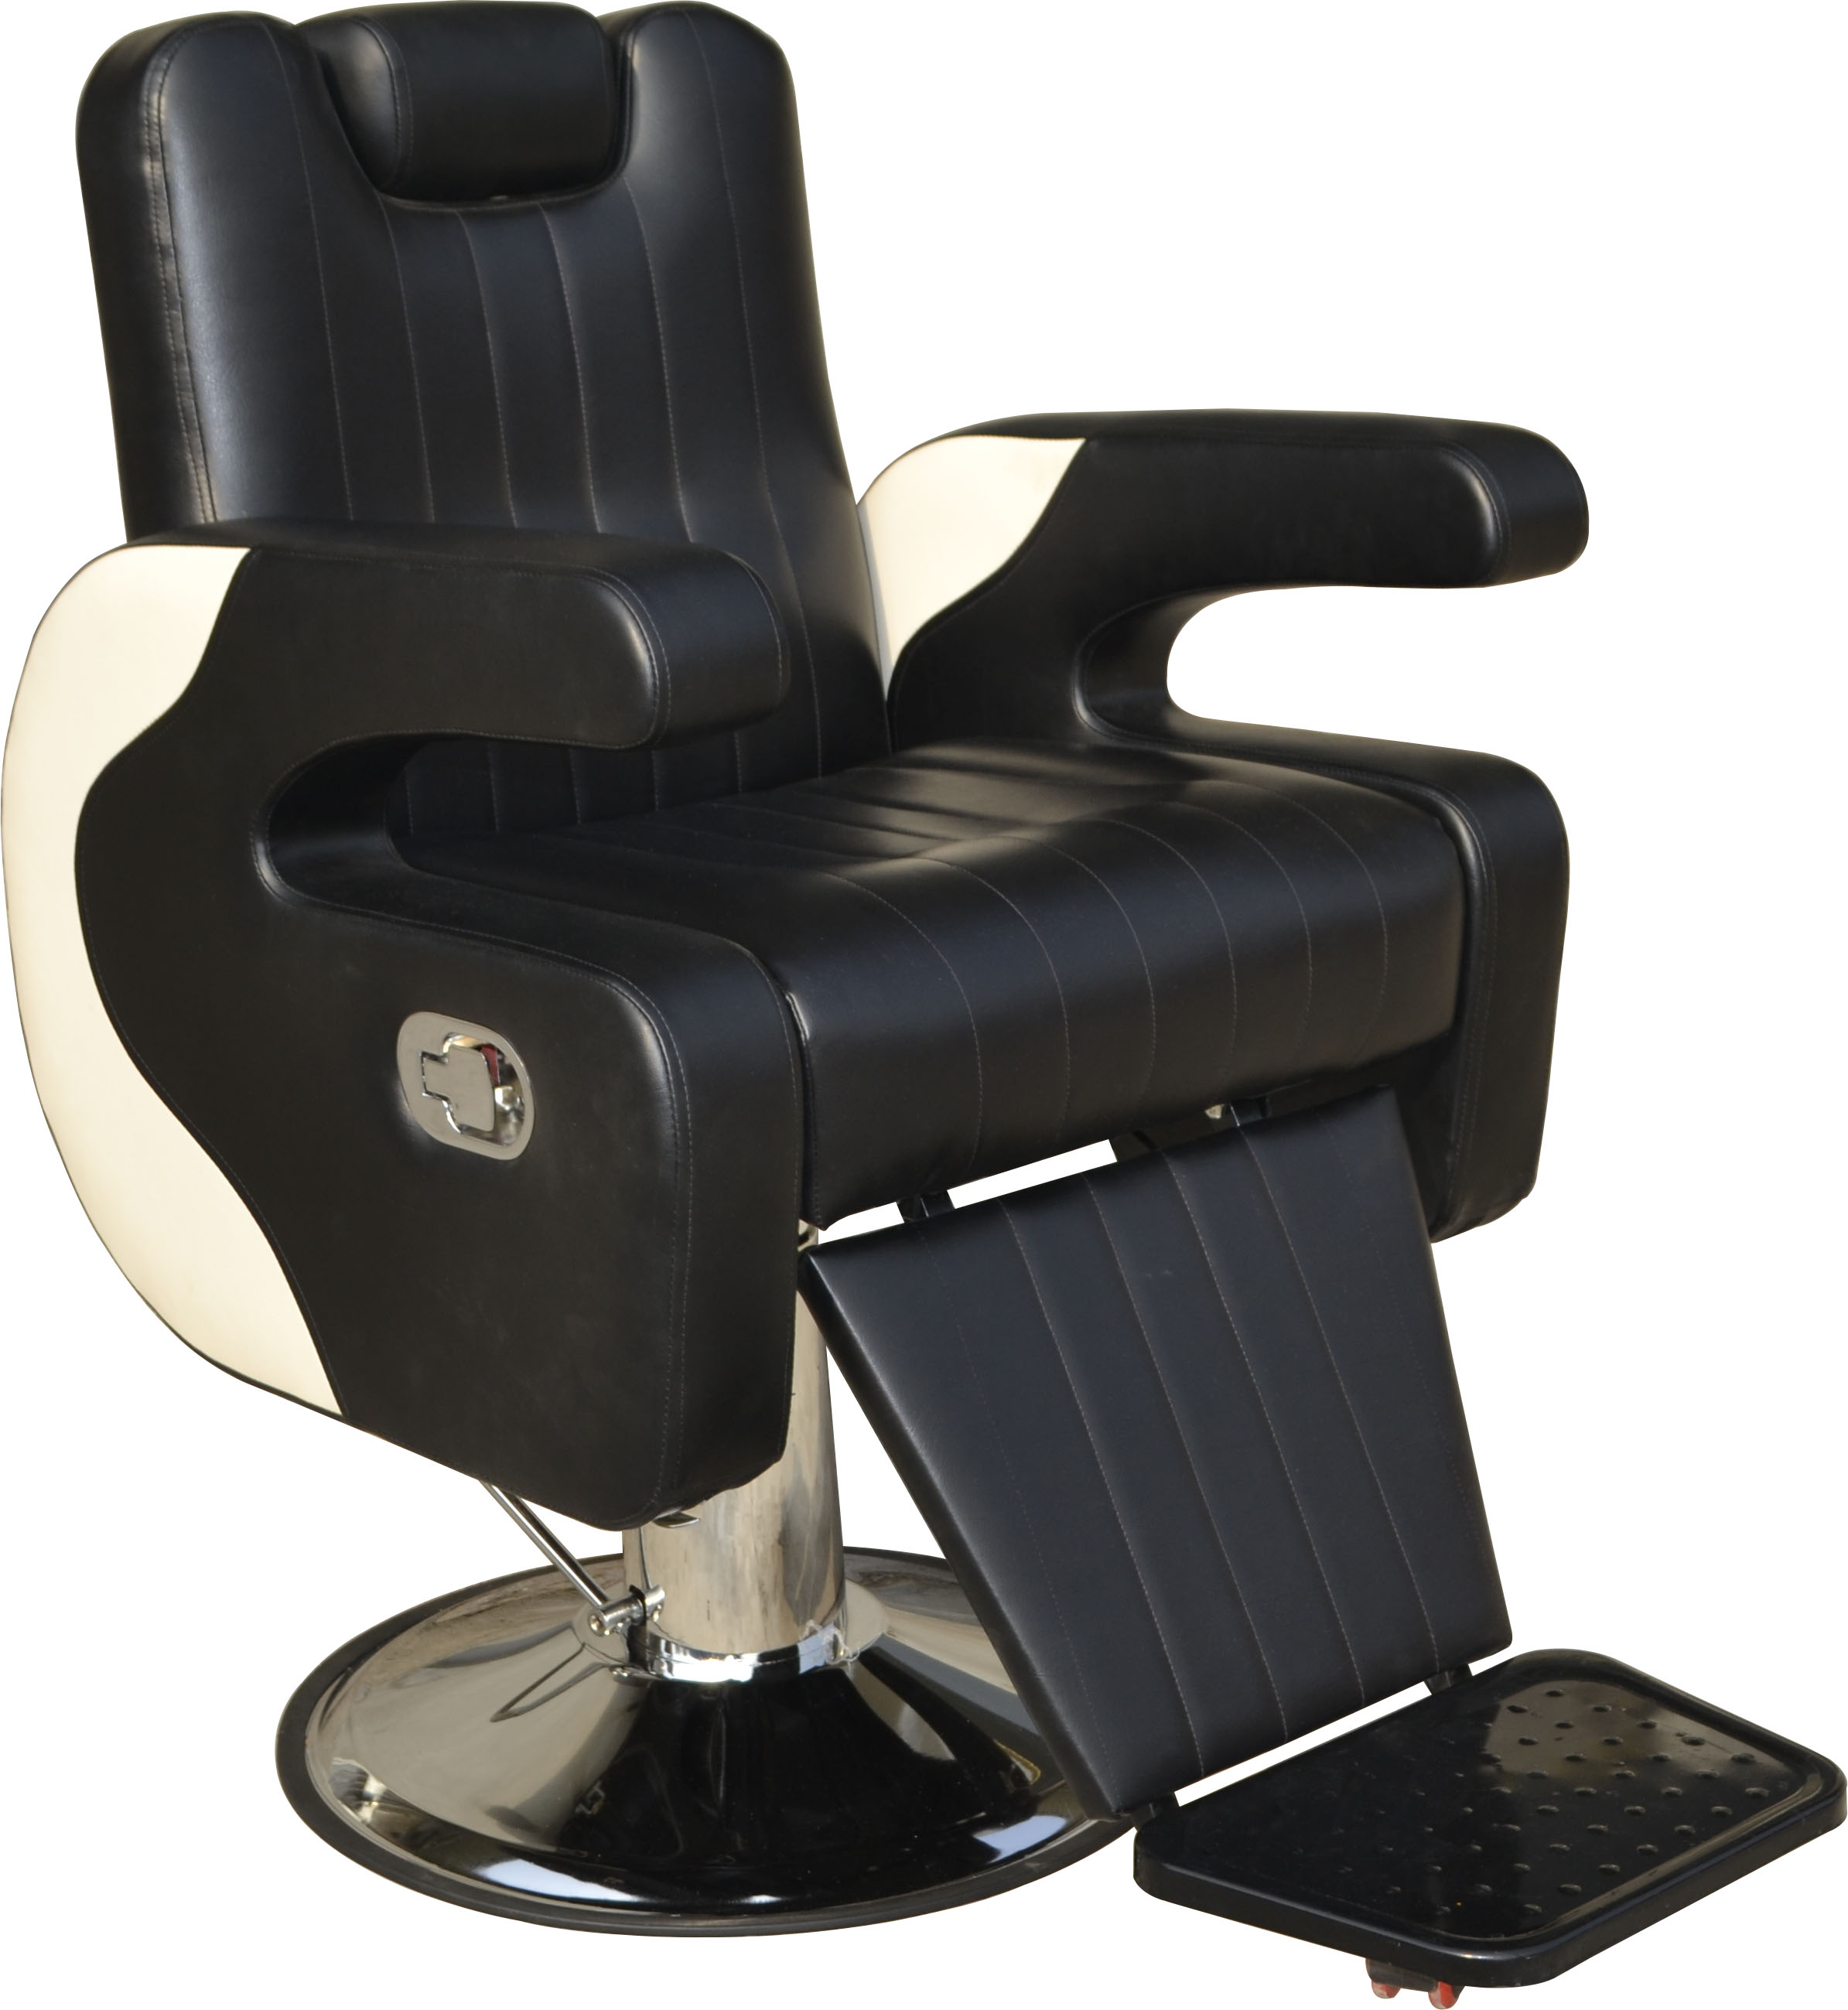 The Chair Lift Barber Chair Hairdressing Chair.